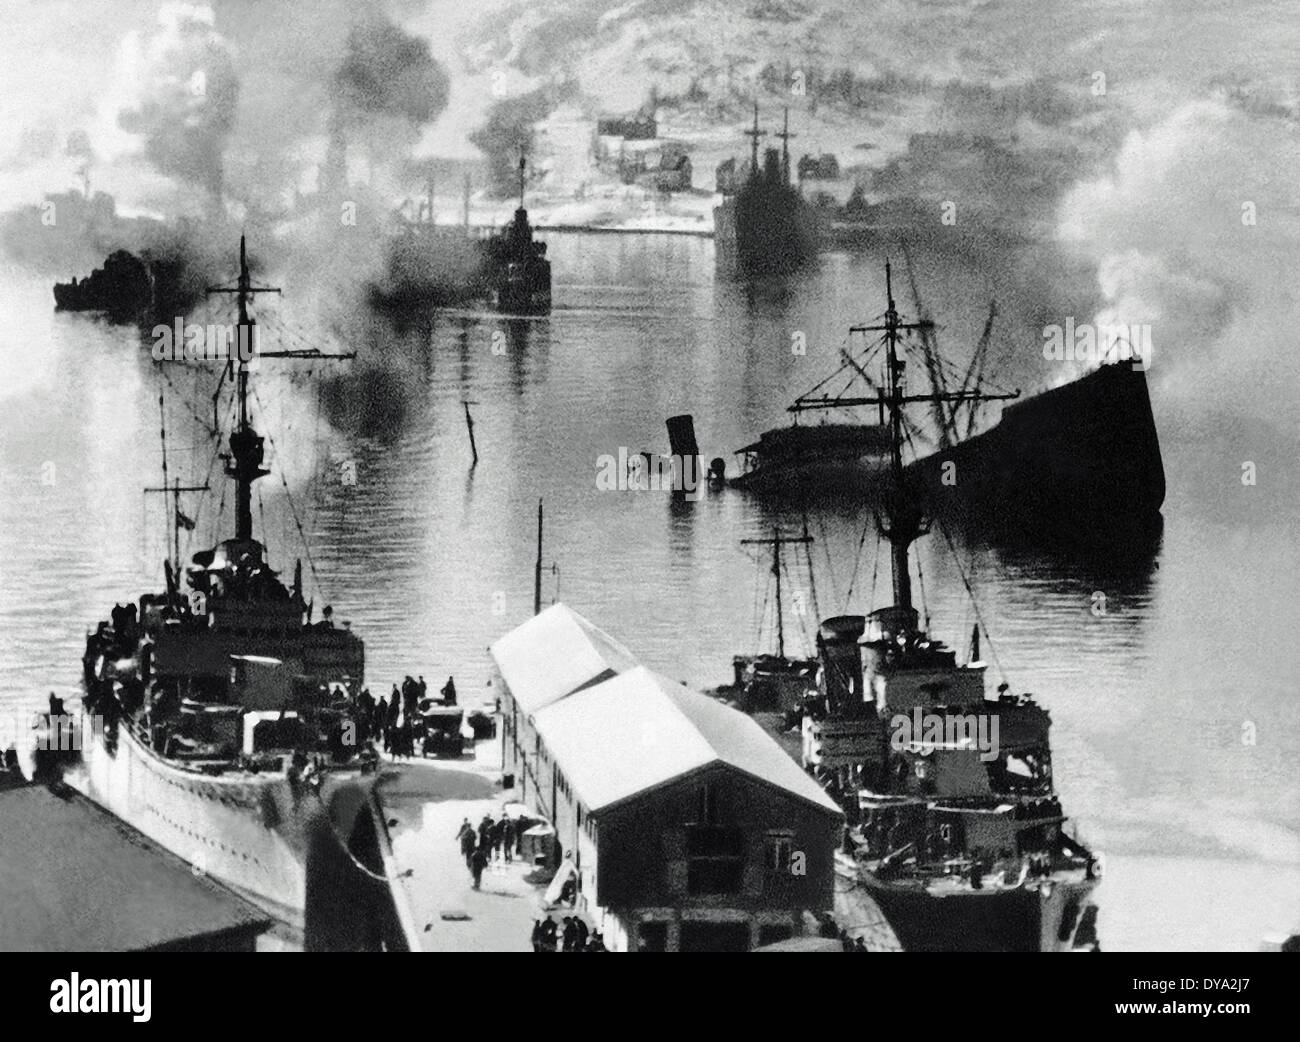 a history of norway and world war two By the standards of world war two, the campaign in norway was small 1,335 norwegians were killed or wounded, 1,869 british were killed or wounded and 533 french and polish troops were killed or wounded.